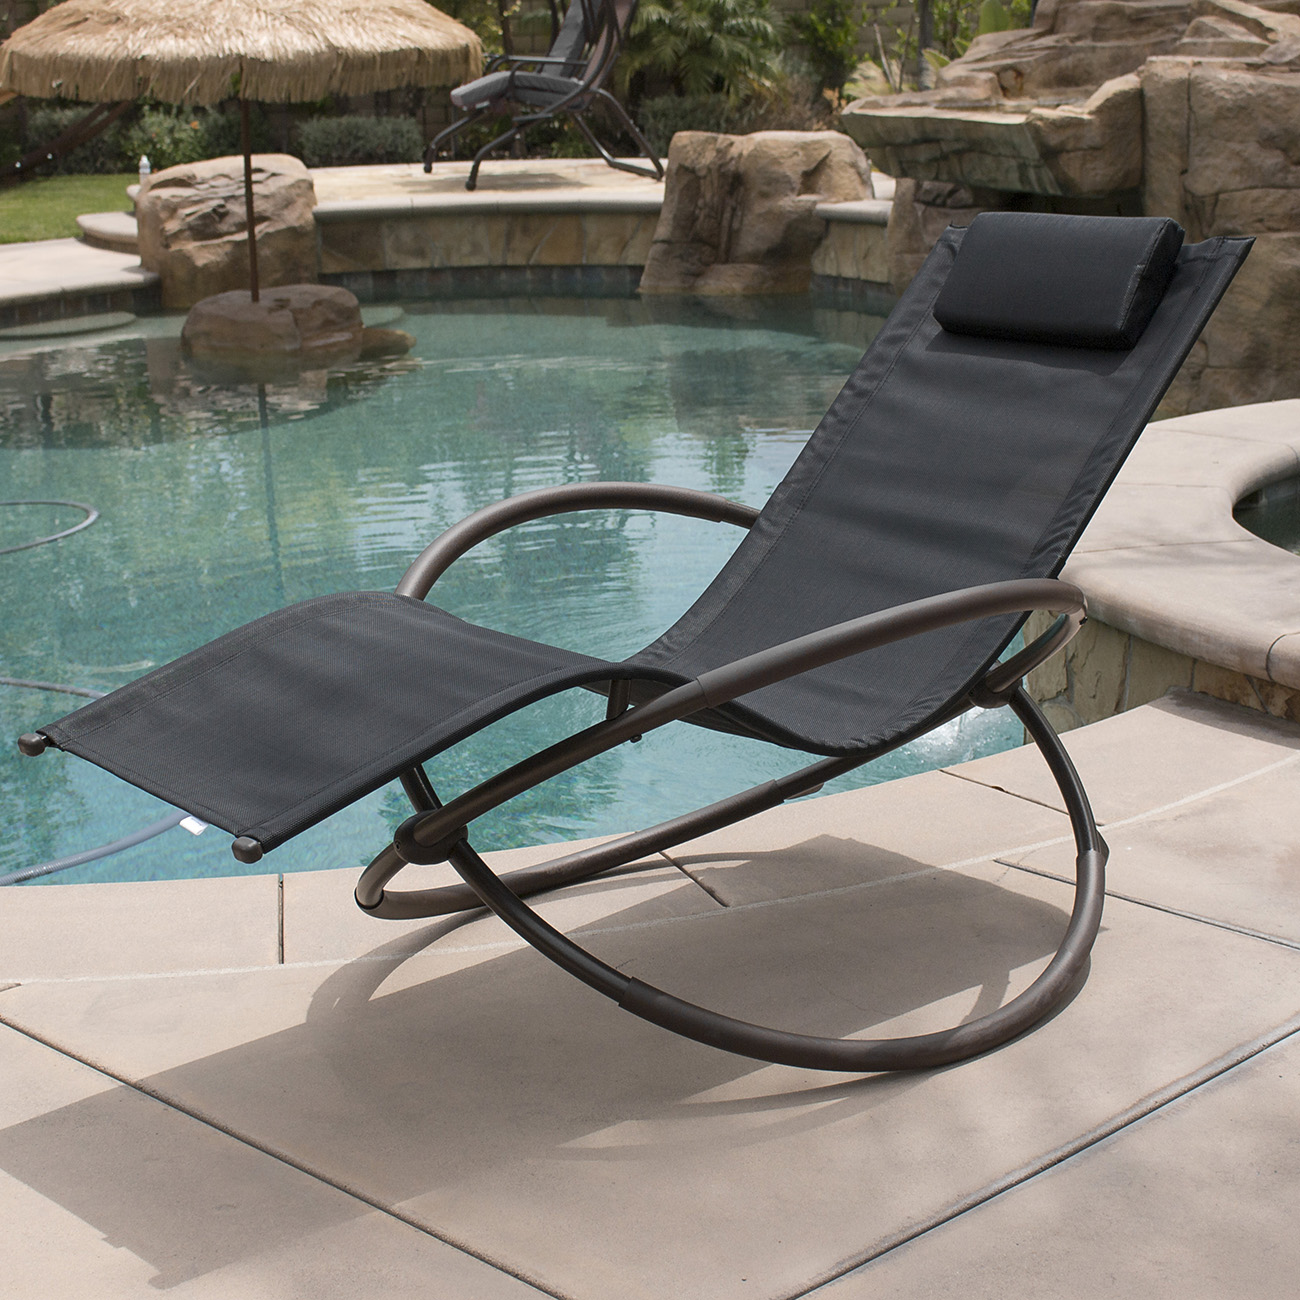 Folding patio lounge chairs - 7 Color Orbital Zero Anti Gravity Lounge Chair